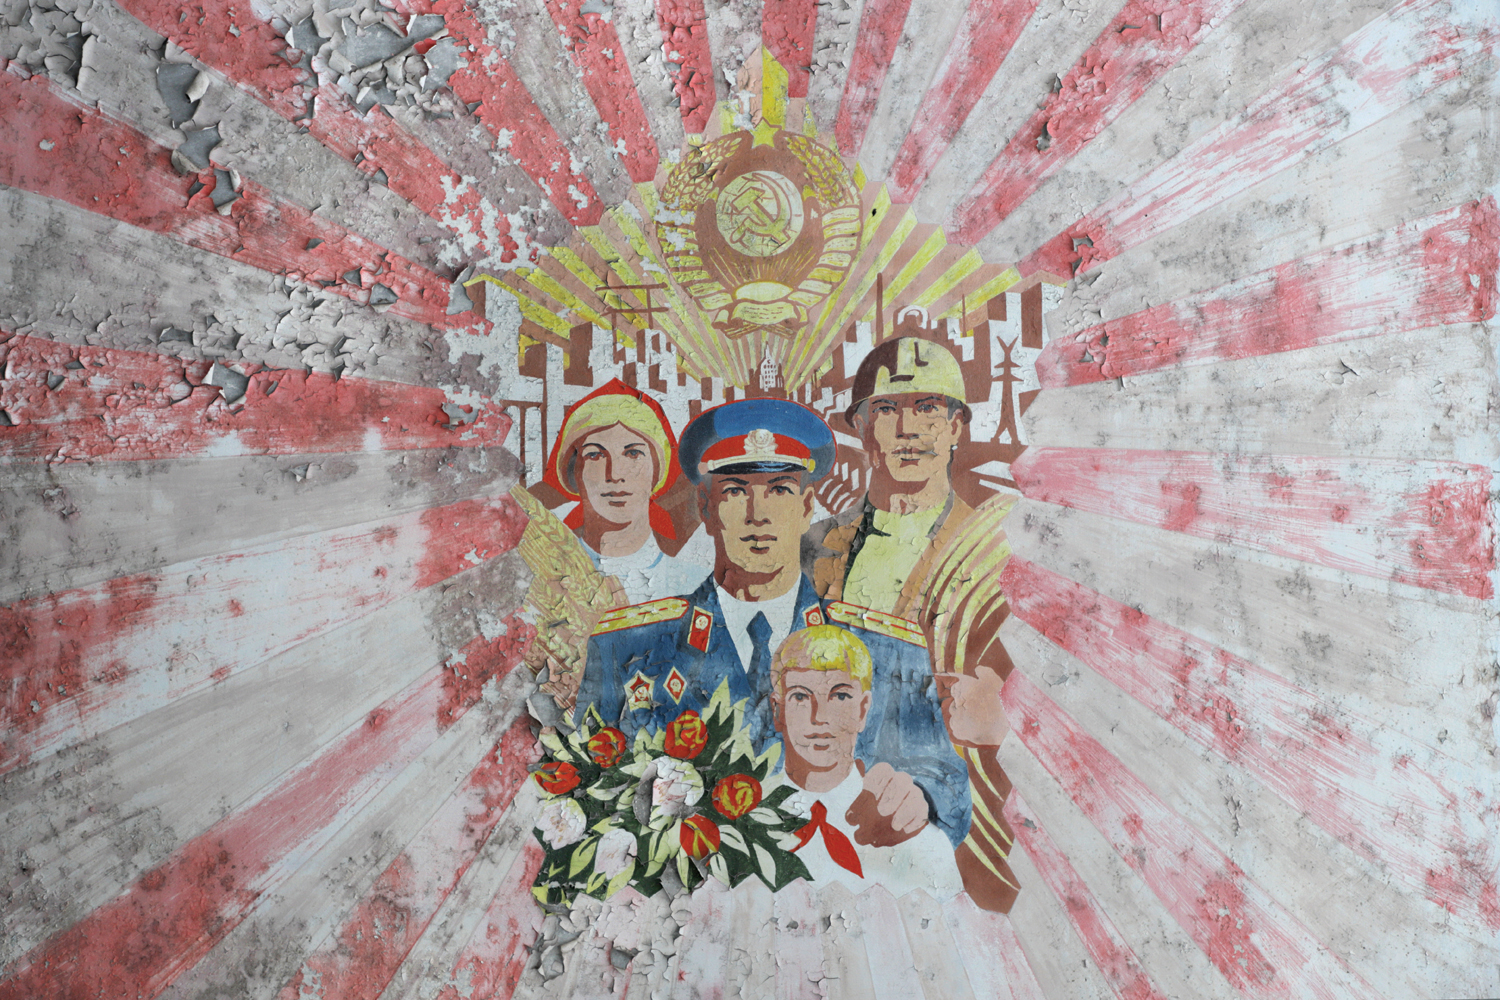 Mural on a residential building, Heroes of Stalingrad Street, Pripyat. This Socialist-realist mural depicts virtuous citizens (a farmer, a firefighter, a police officer, and a Young Pioneer) under a radiant Soviet crest. © Darmon Richter / FUEL Publishing